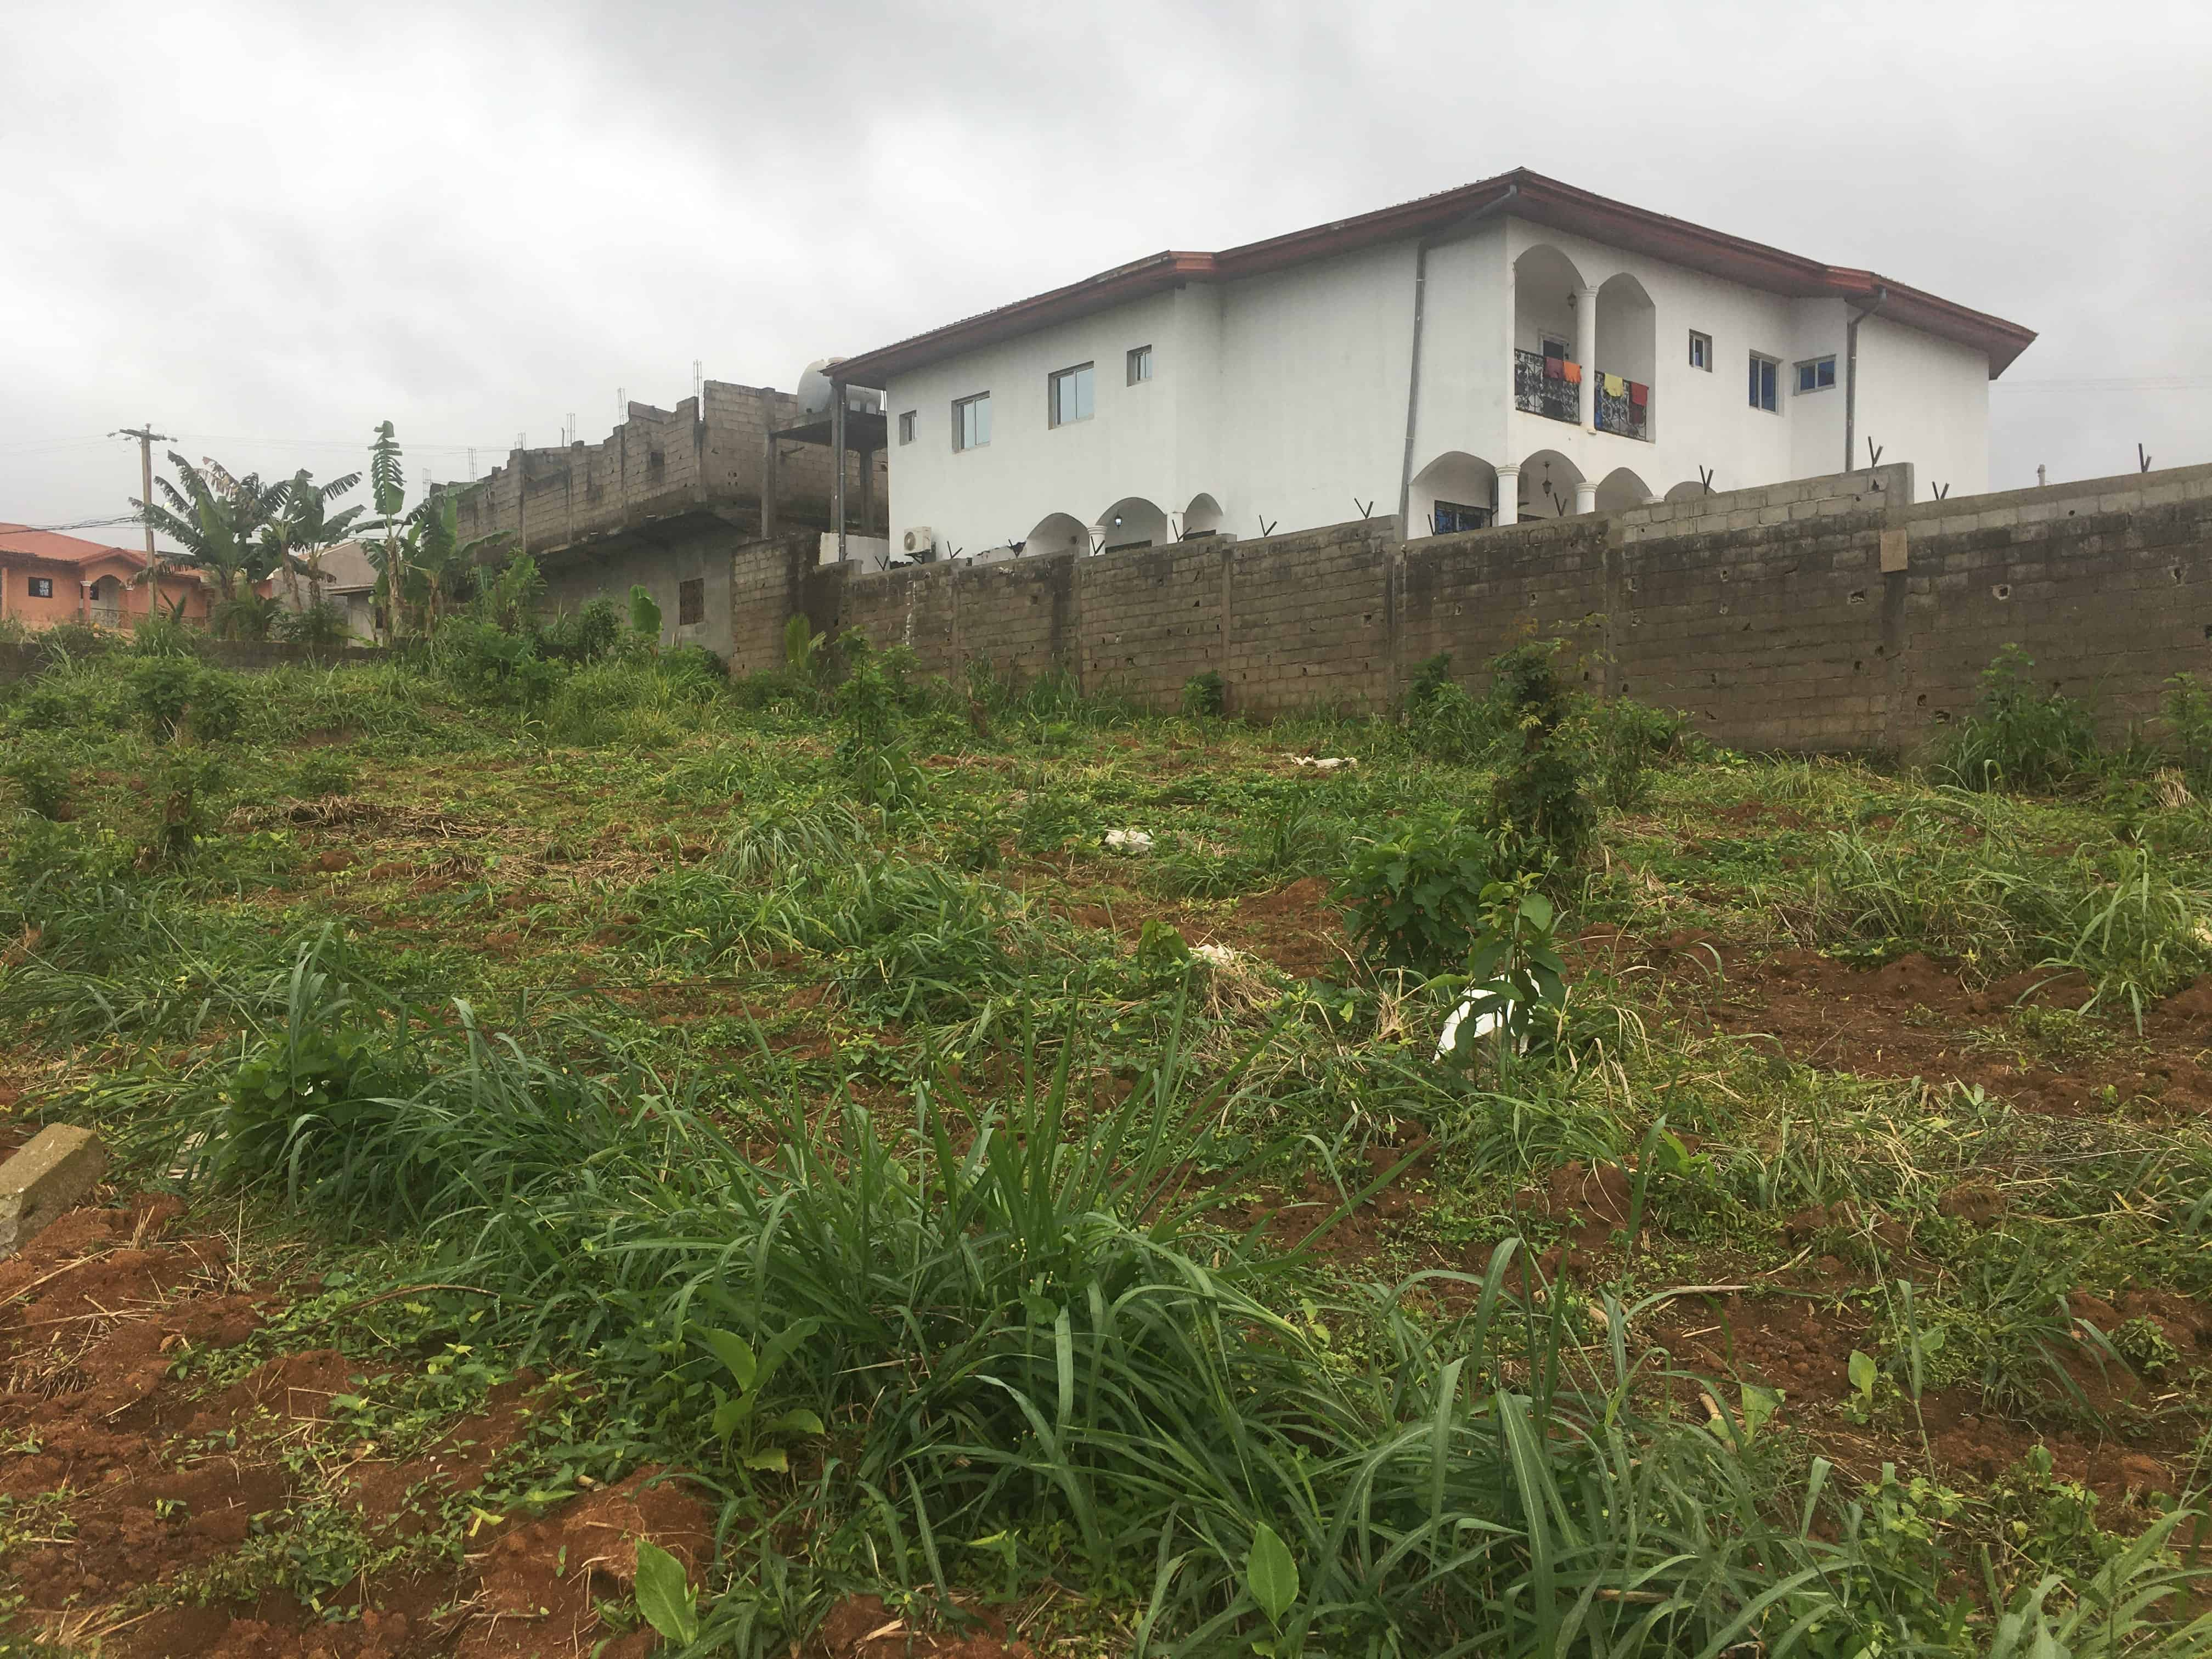 Land for sale at Yaoundé, Odza, Minkan - 1000 m2 - 30 000 000 FCFA